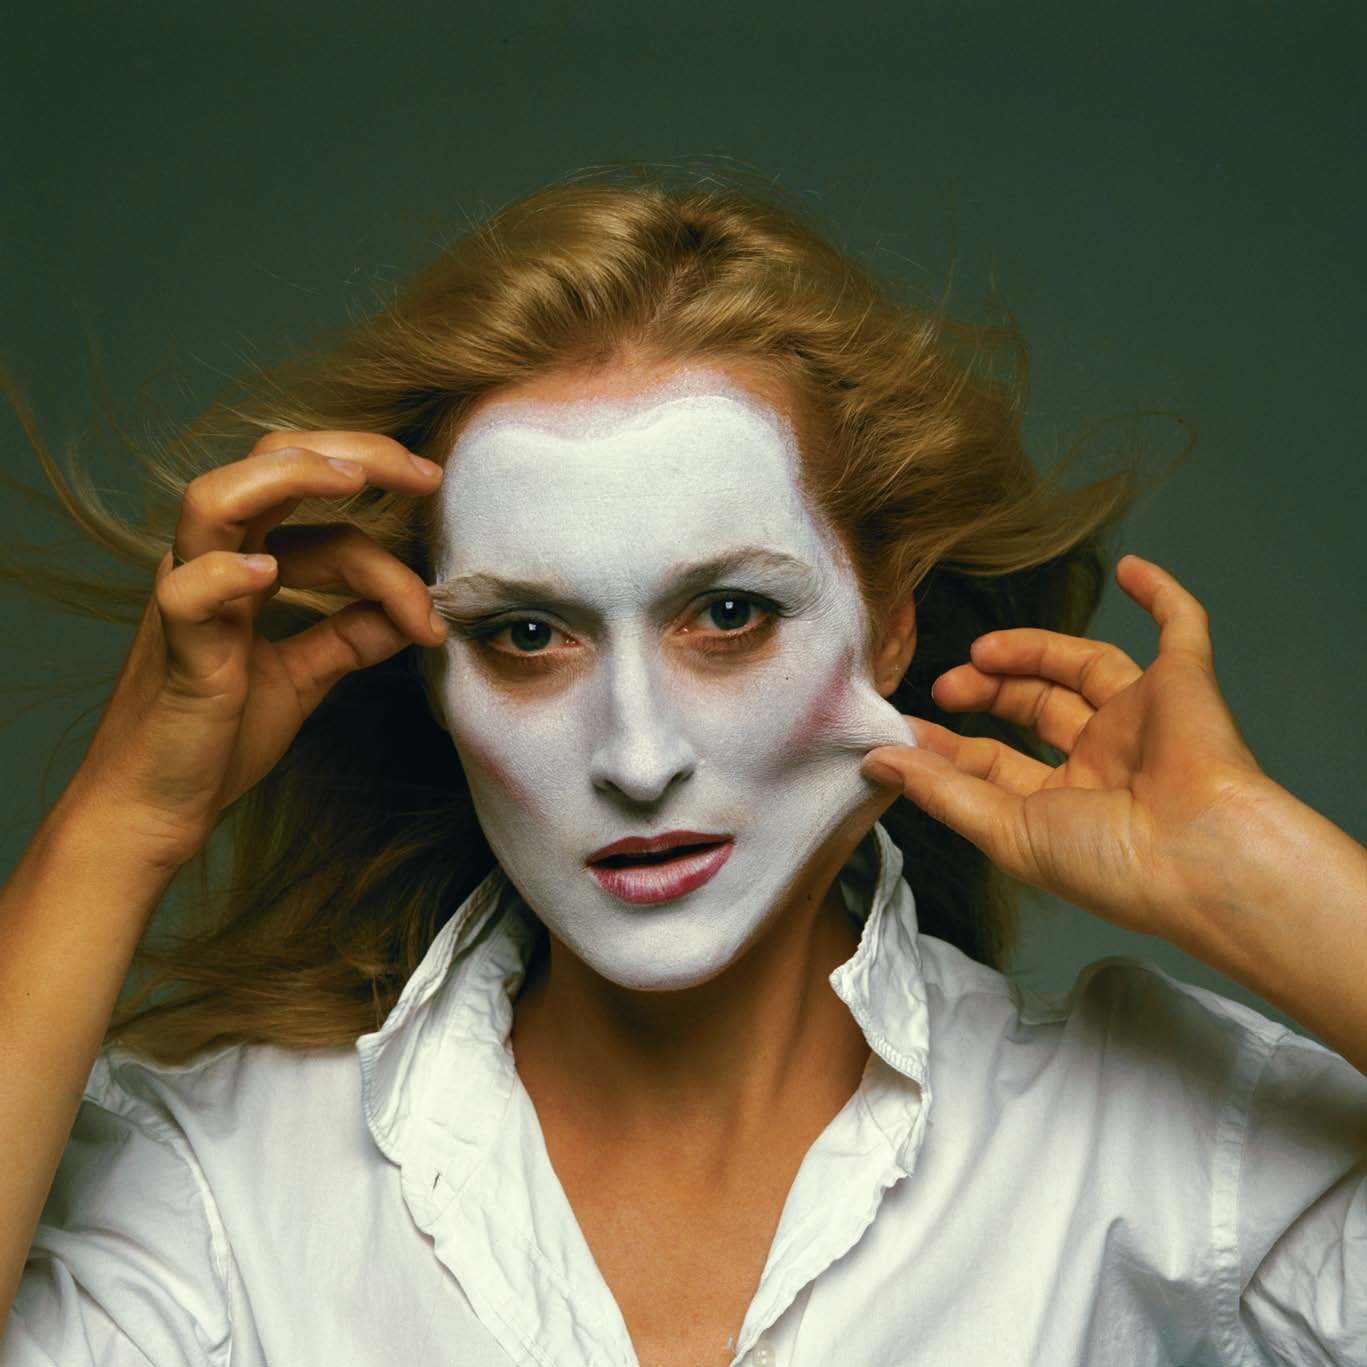 Annie Leibovitz Celebrity Photographer The Soul Of The